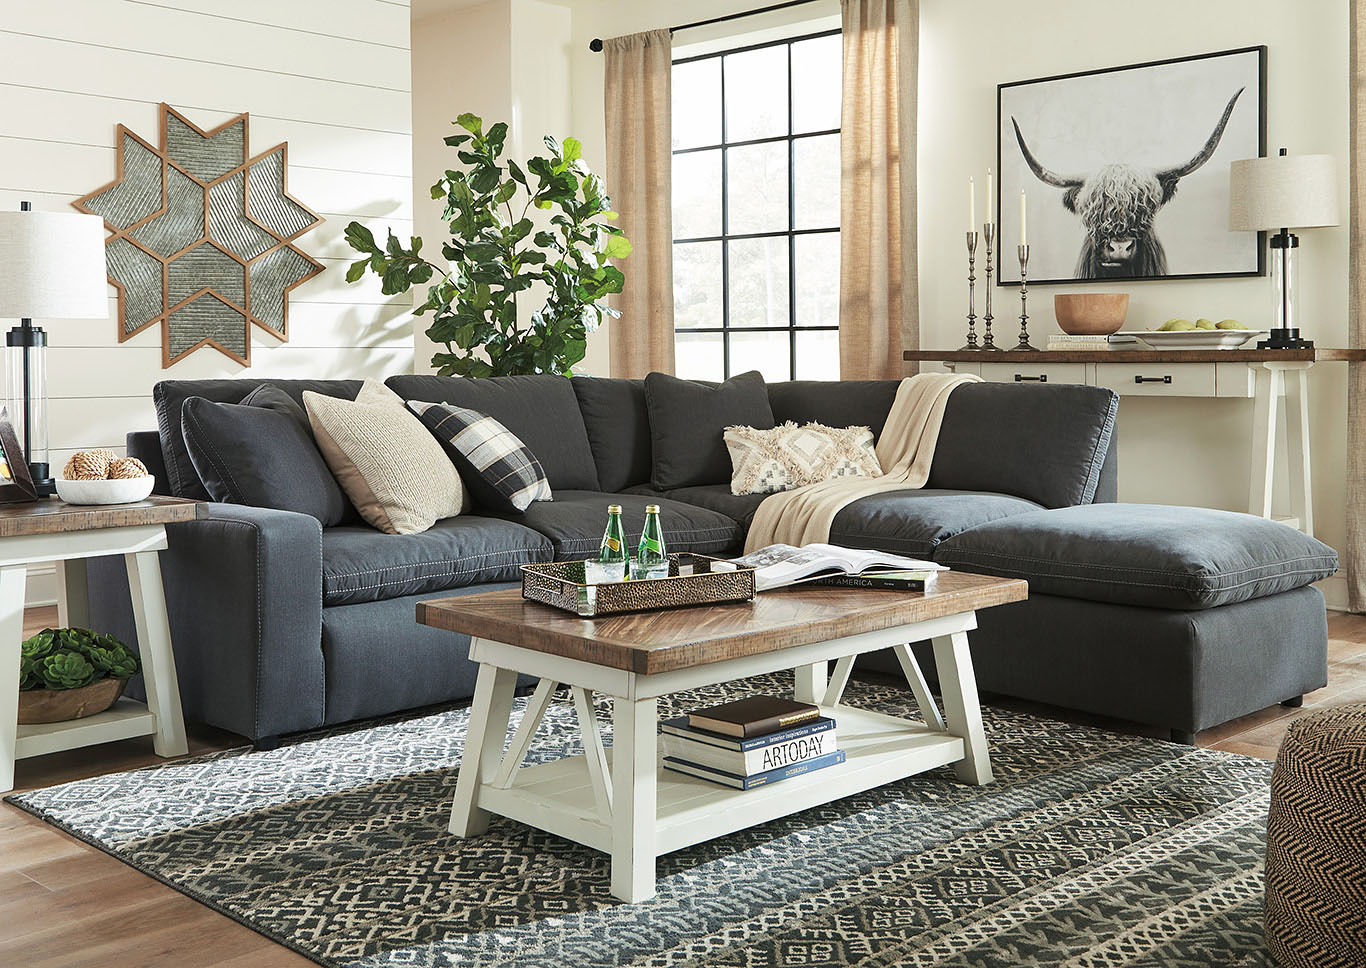 Savesto Charcoal LAF Corner Chair Sectional,Signature Design By Ashley